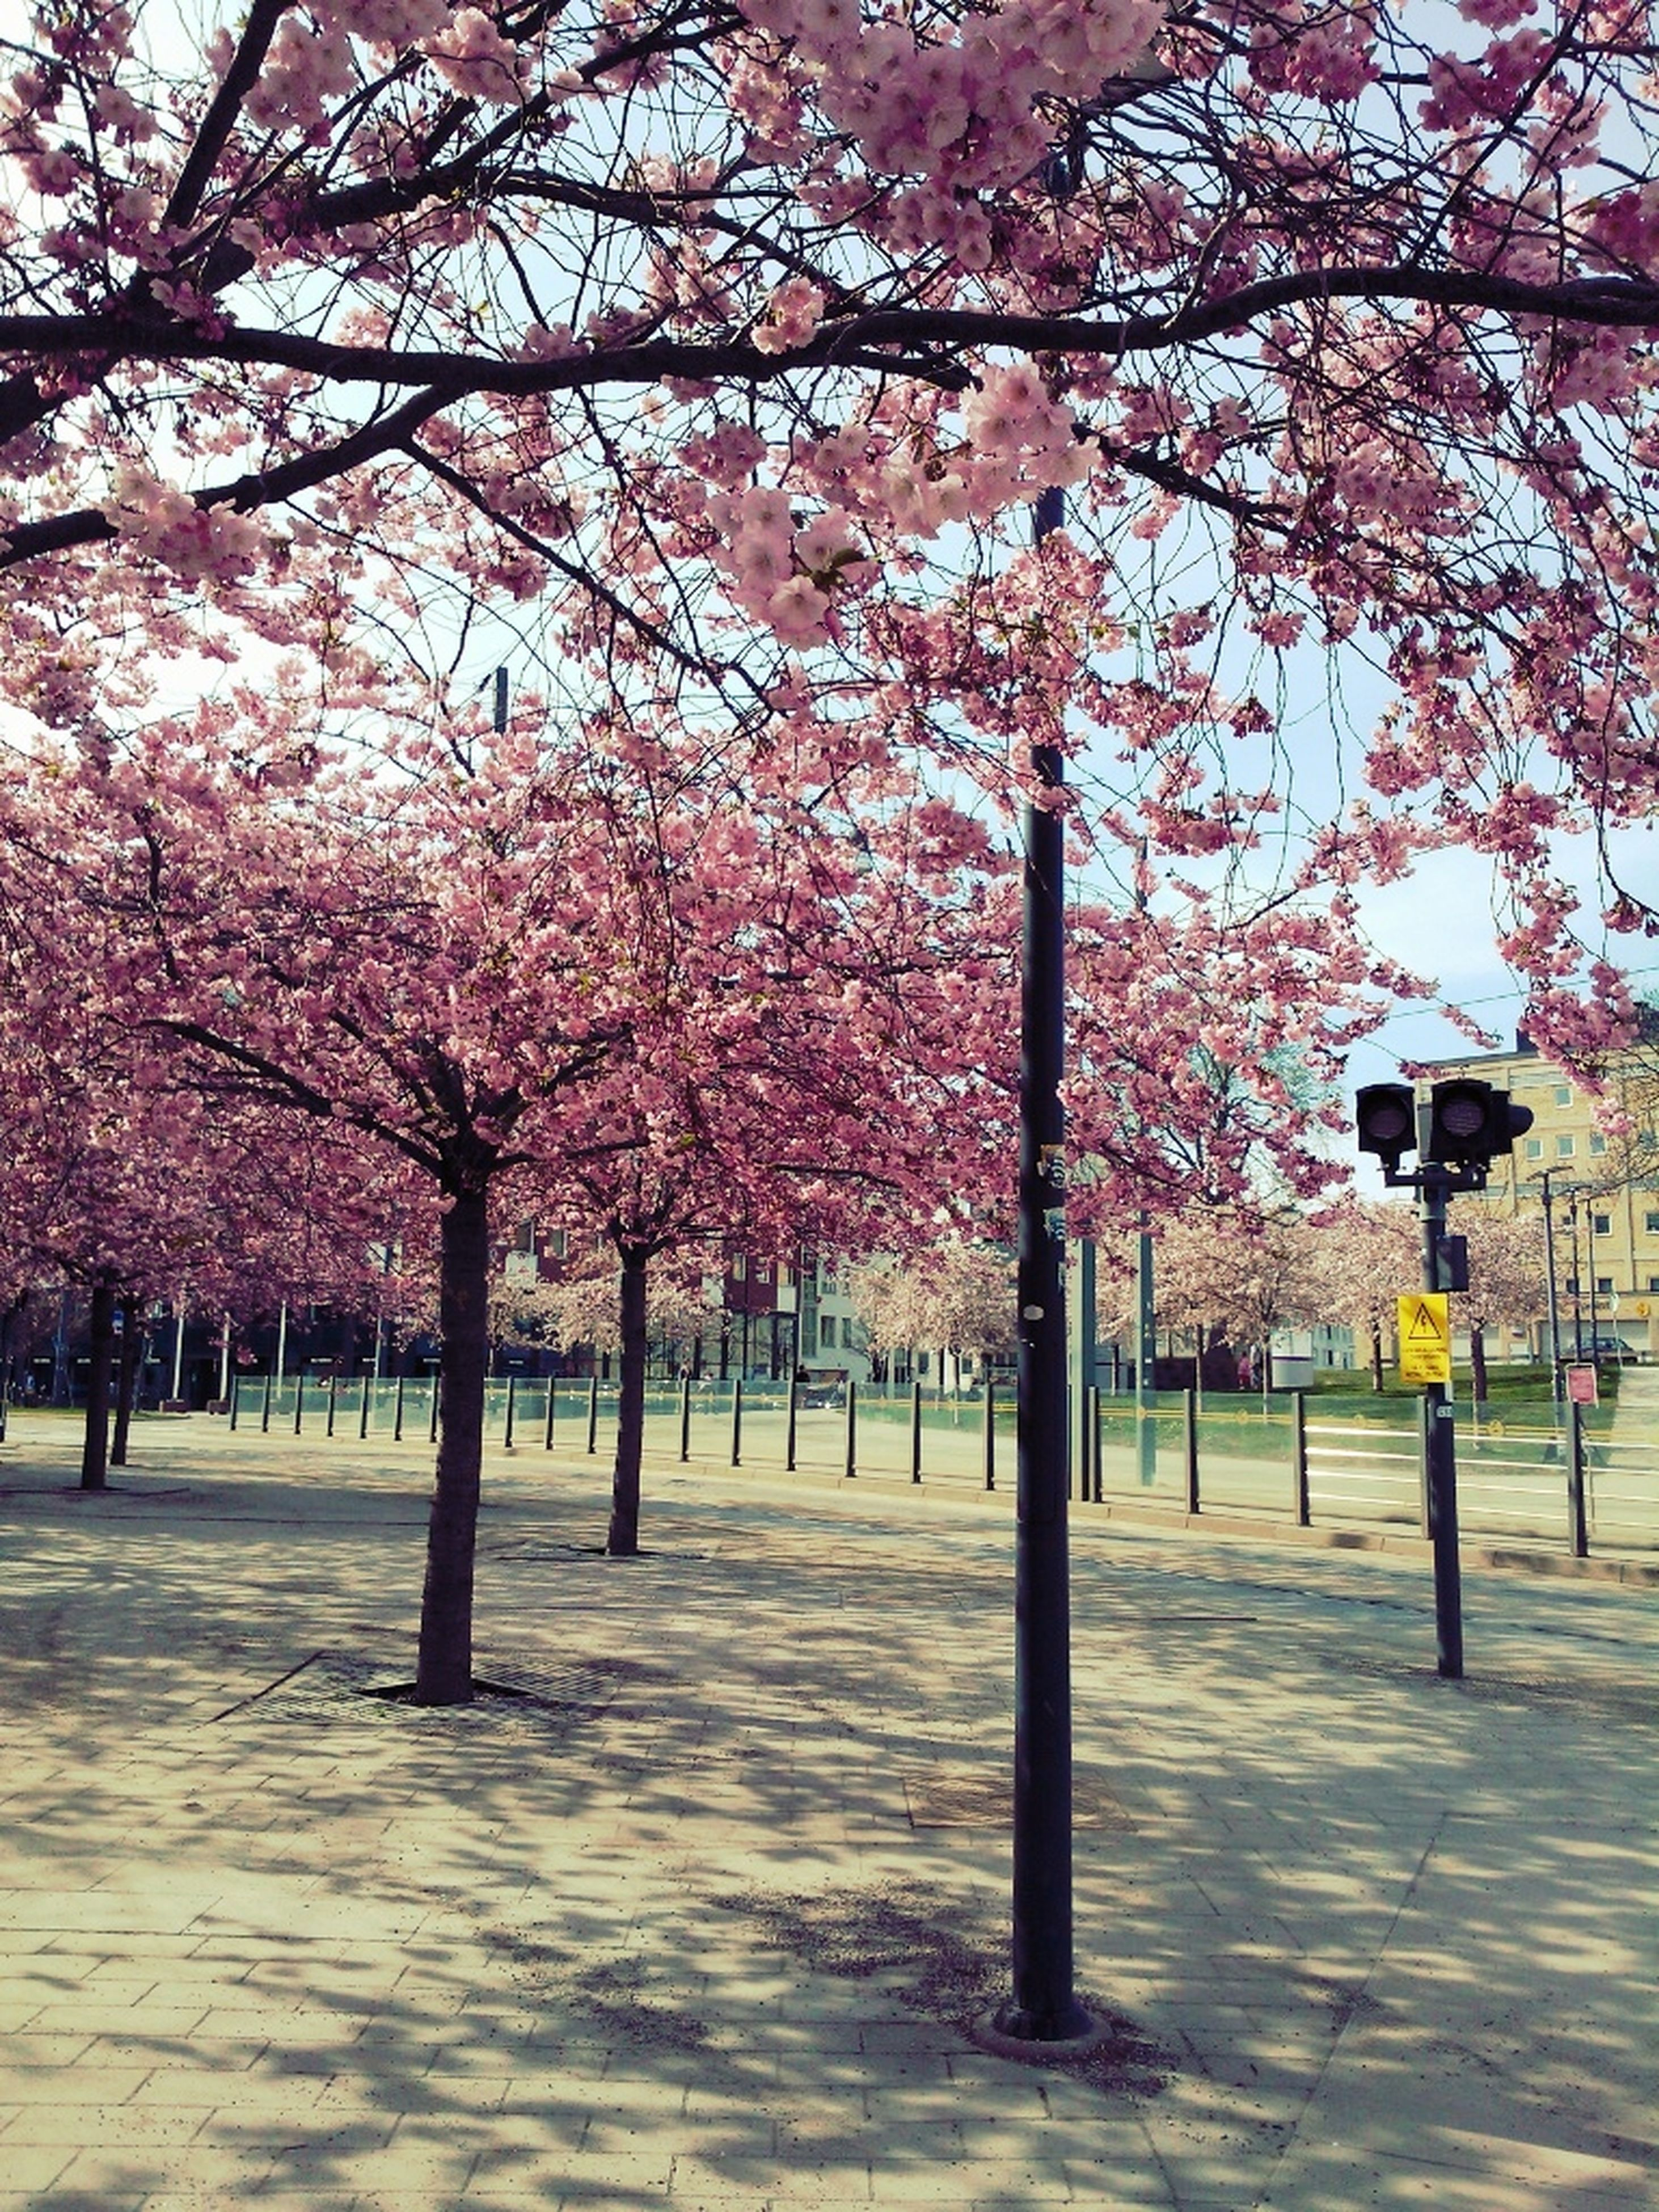 tree, flower, cherry blossom, branch, blossom, cherry tree, freshness, growth, pink color, nature, fragility, beauty in nature, park - man made space, springtime, person, city, built structure, building exterior, large group of people